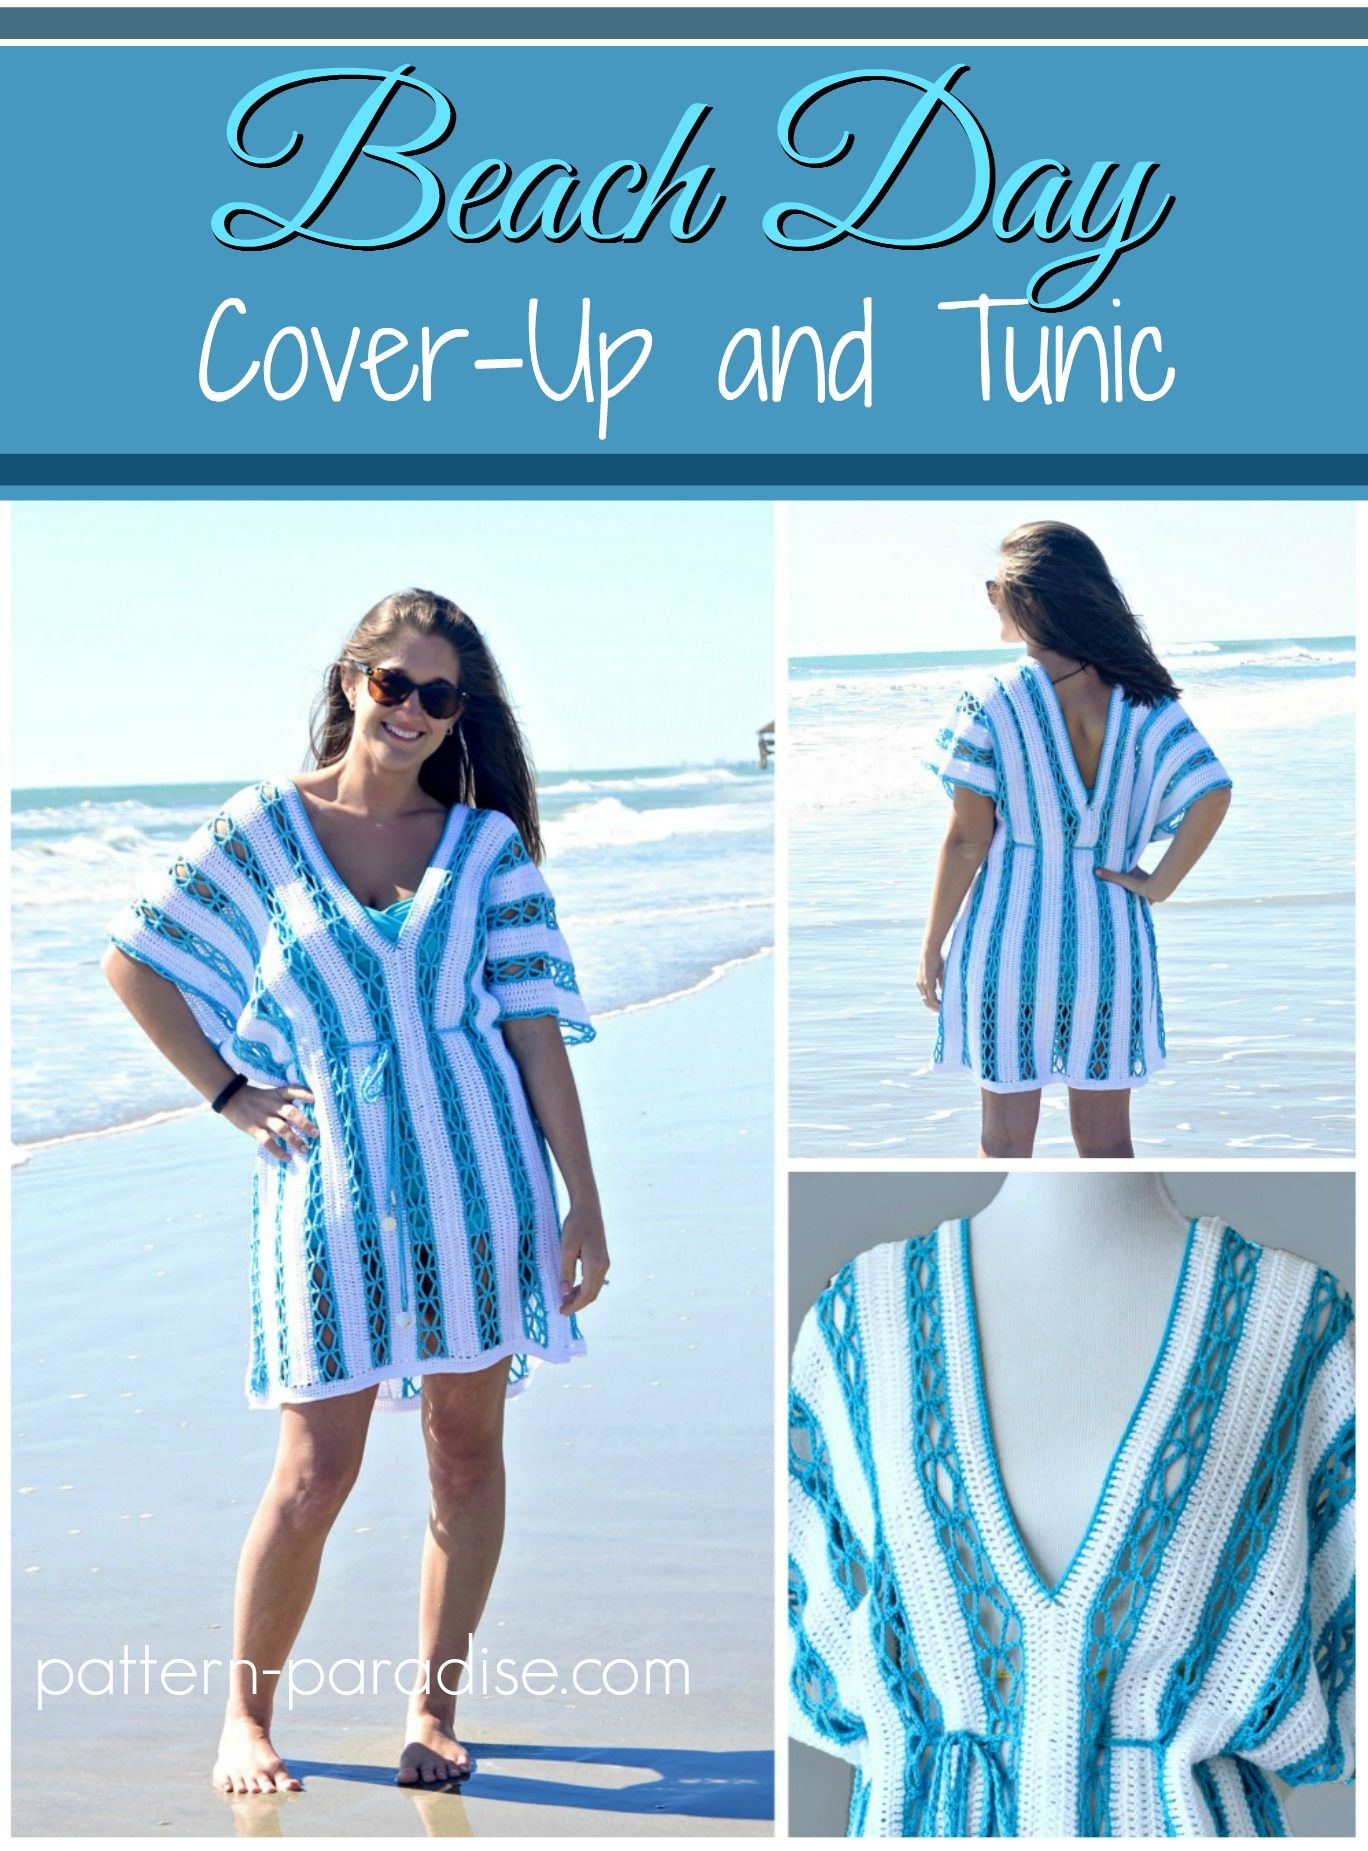 Celebratemomcal Beach Day Cover Up Tunic Crochet Bathing Suit